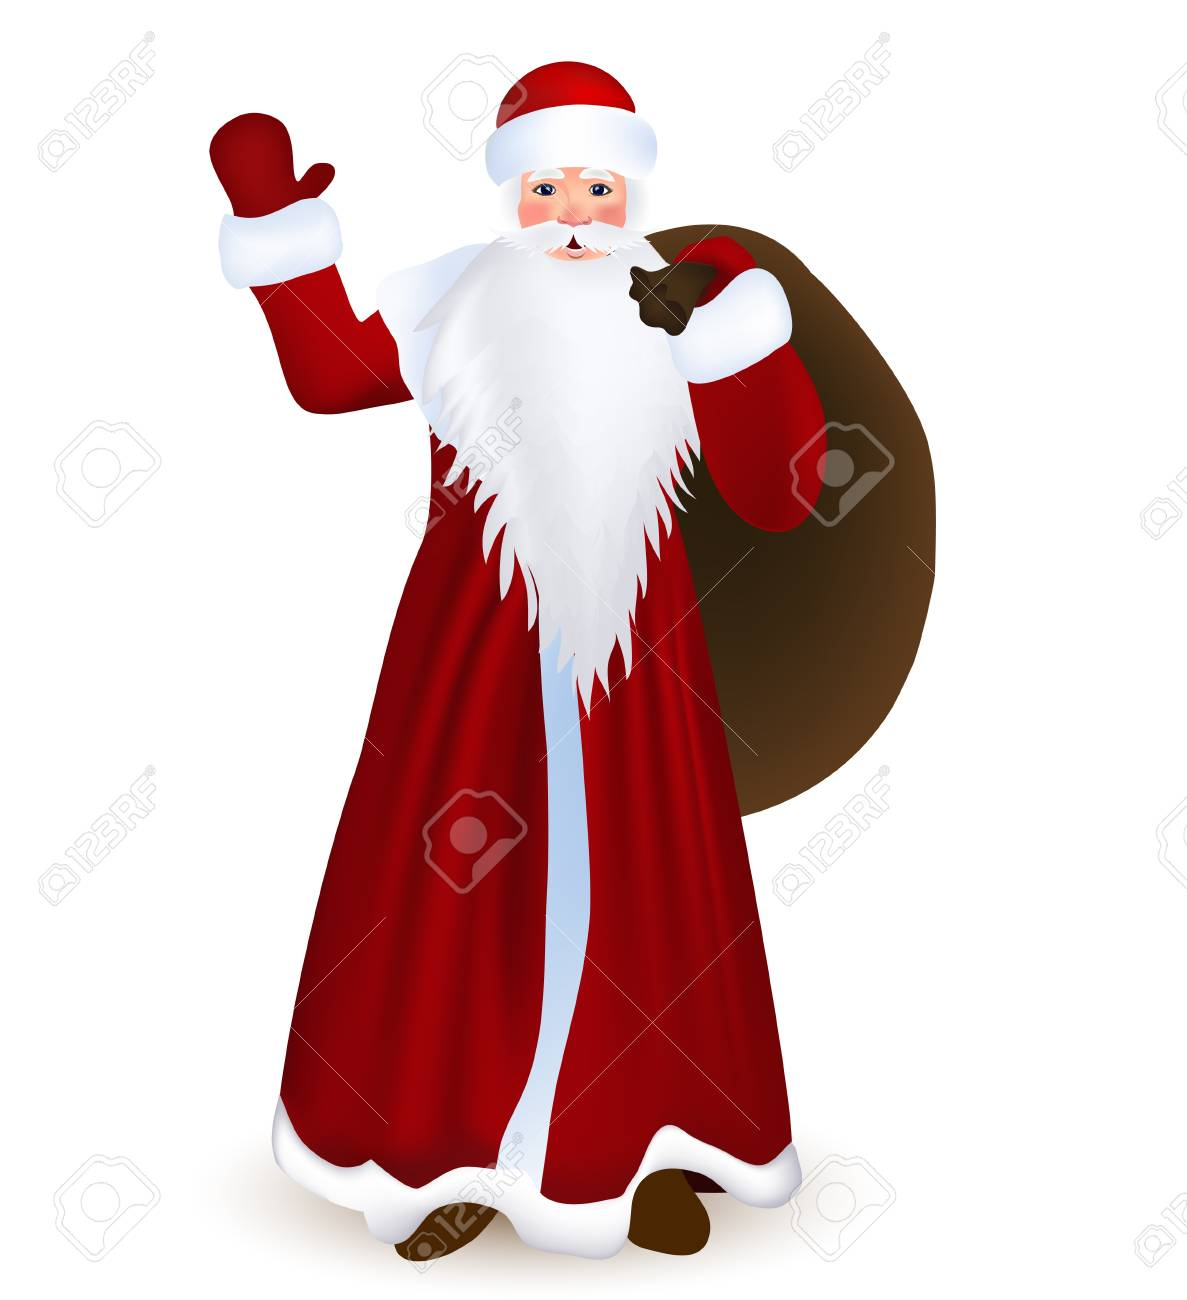 Santa Claus wishes you a Happy New Year and Merry Christmas Stock Vector - 16657149